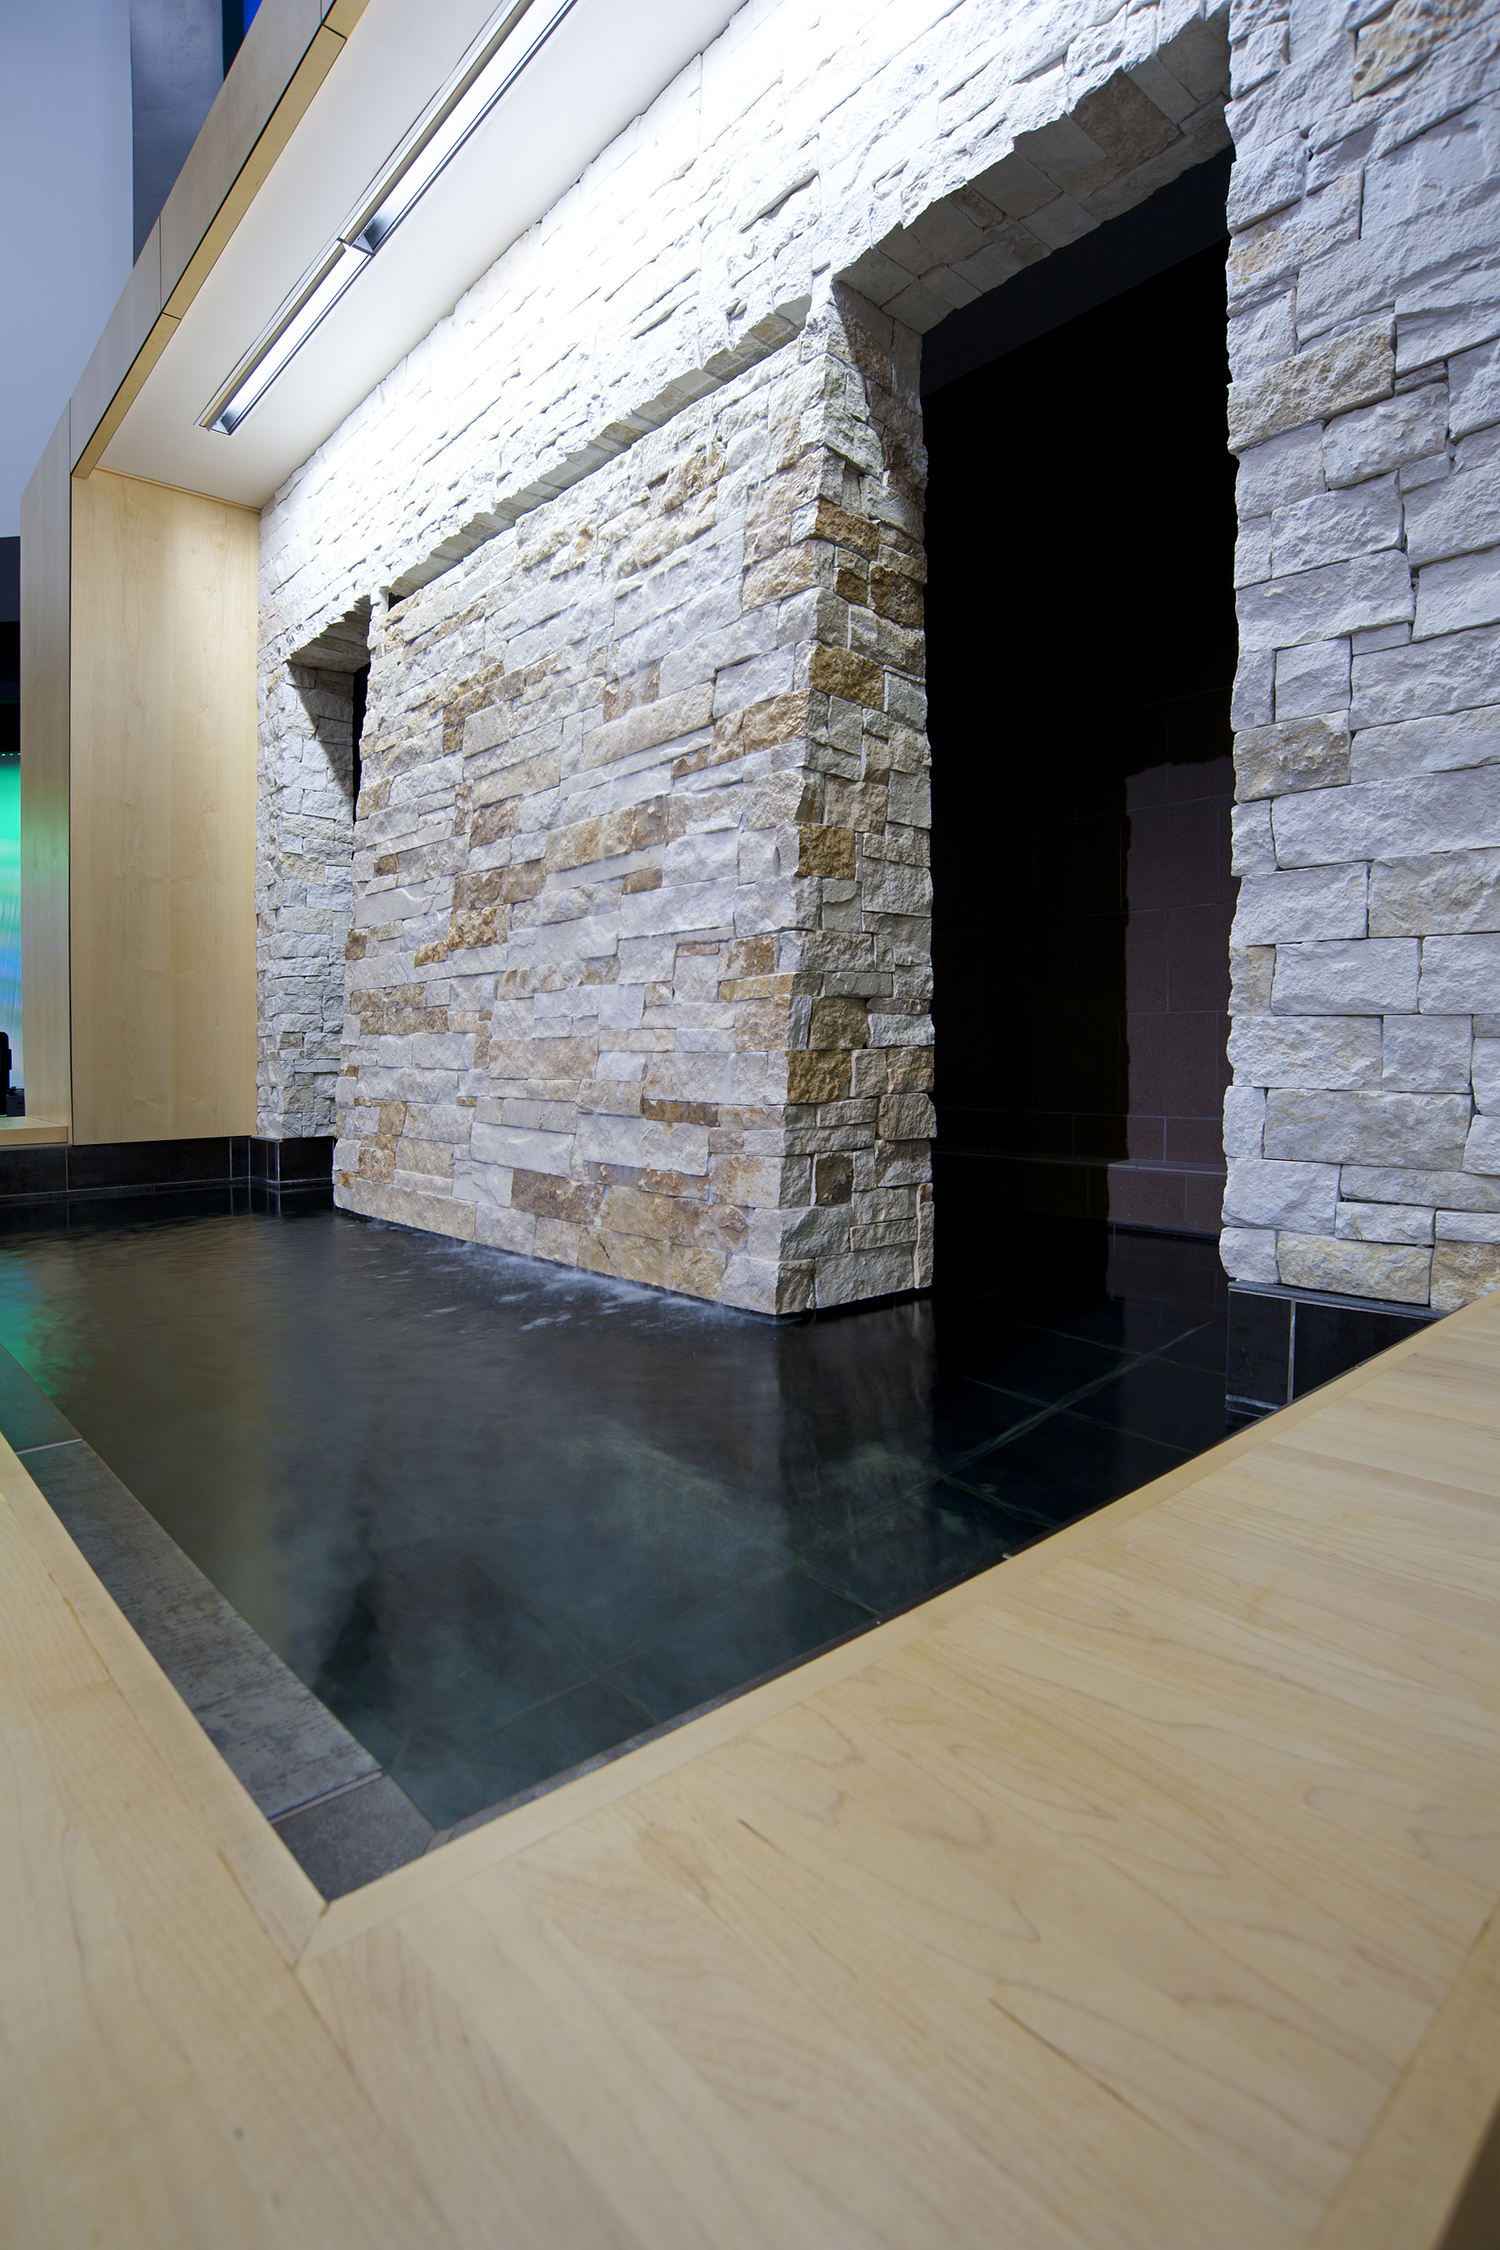 Immersion Baptistery, The Hills Church of Christ, North Richland Hills, TX.